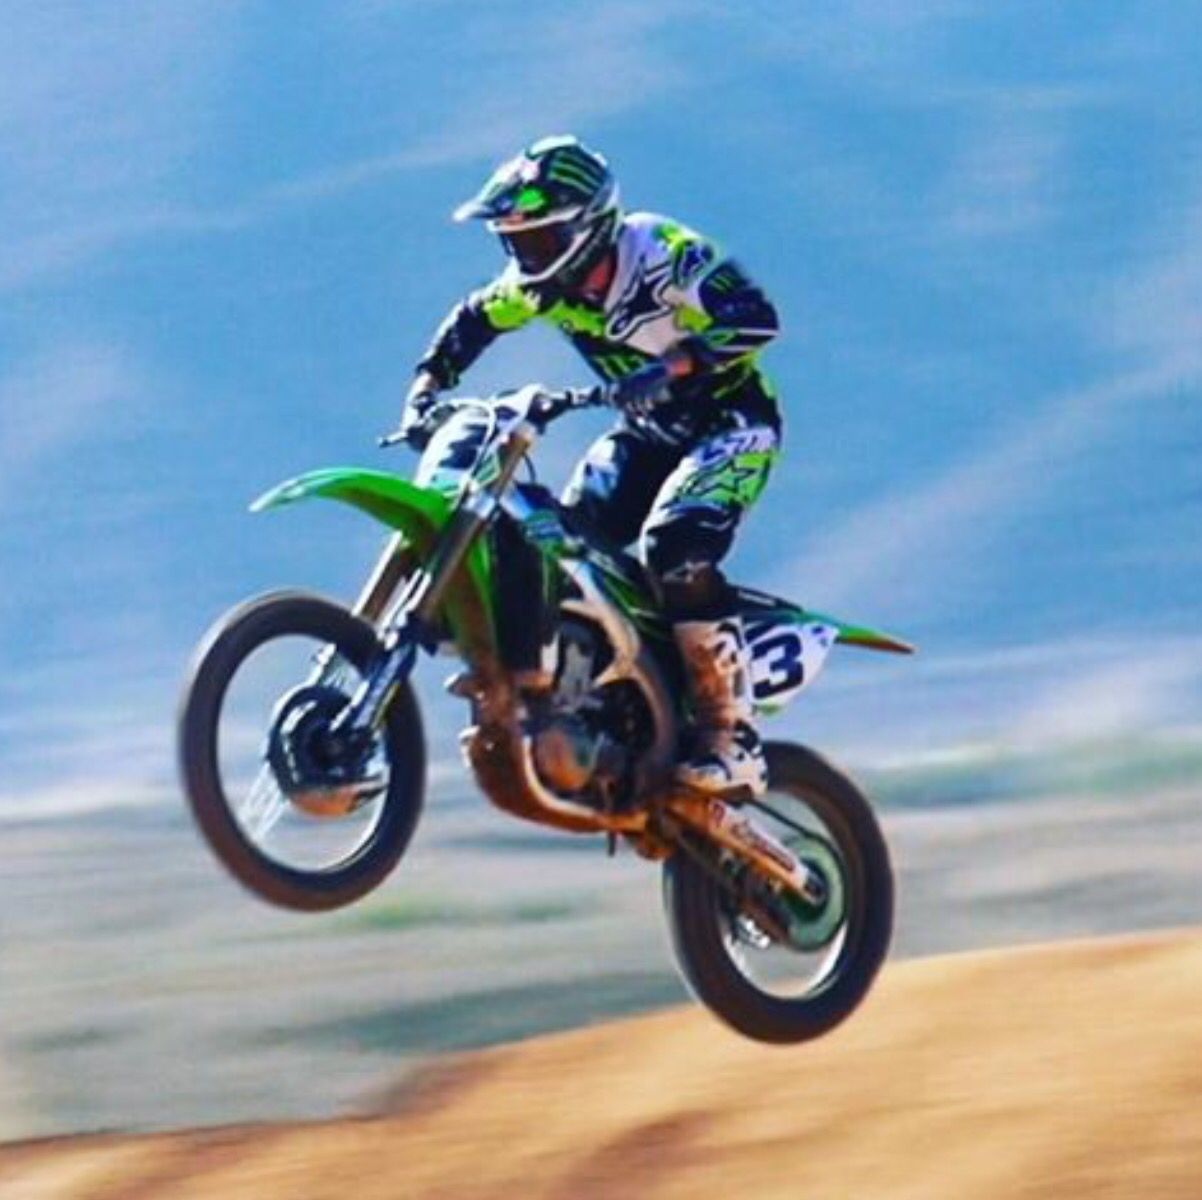 Eli Tomac Moves From Honda To Monster Energy Kawasaki In